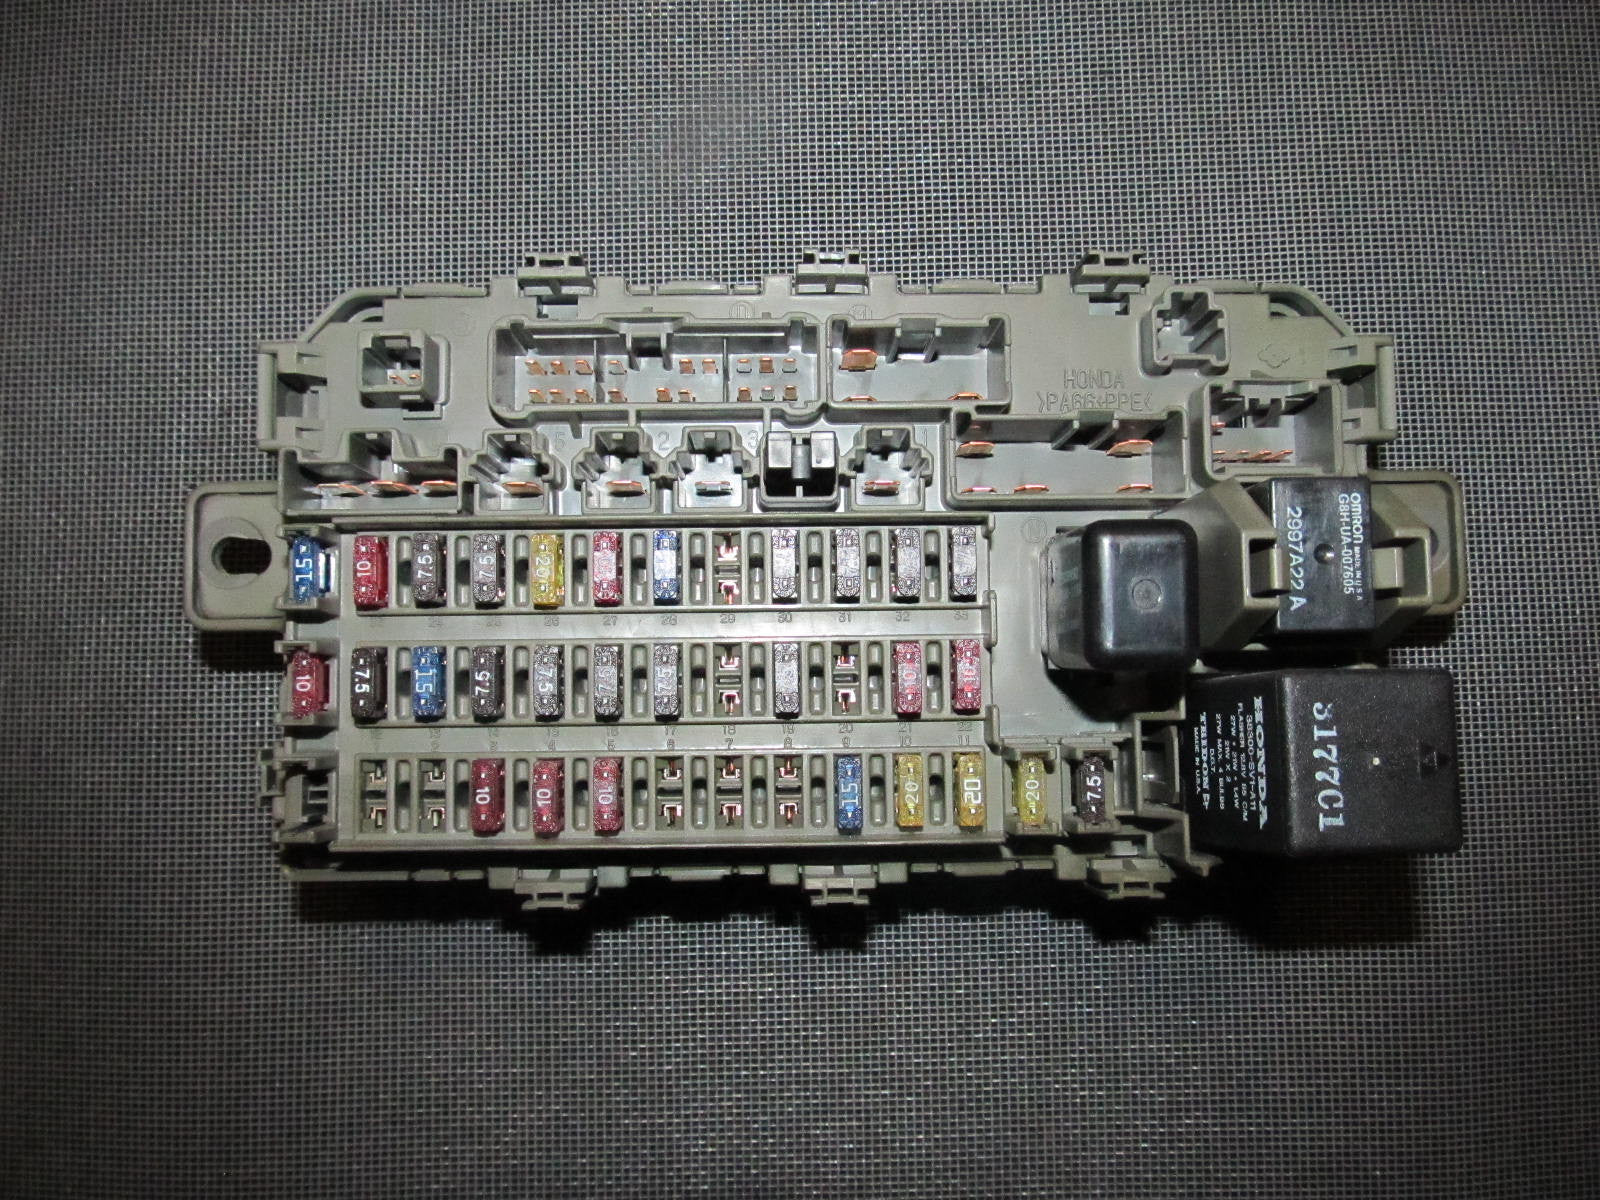 IMG_9687_e40c3657 cee5 4226 9211 04a229811583?v=1405129915 96 97 98 99 00 honda civic oem interior fuse box with relay 99 civic fuse diagram at fashall.co